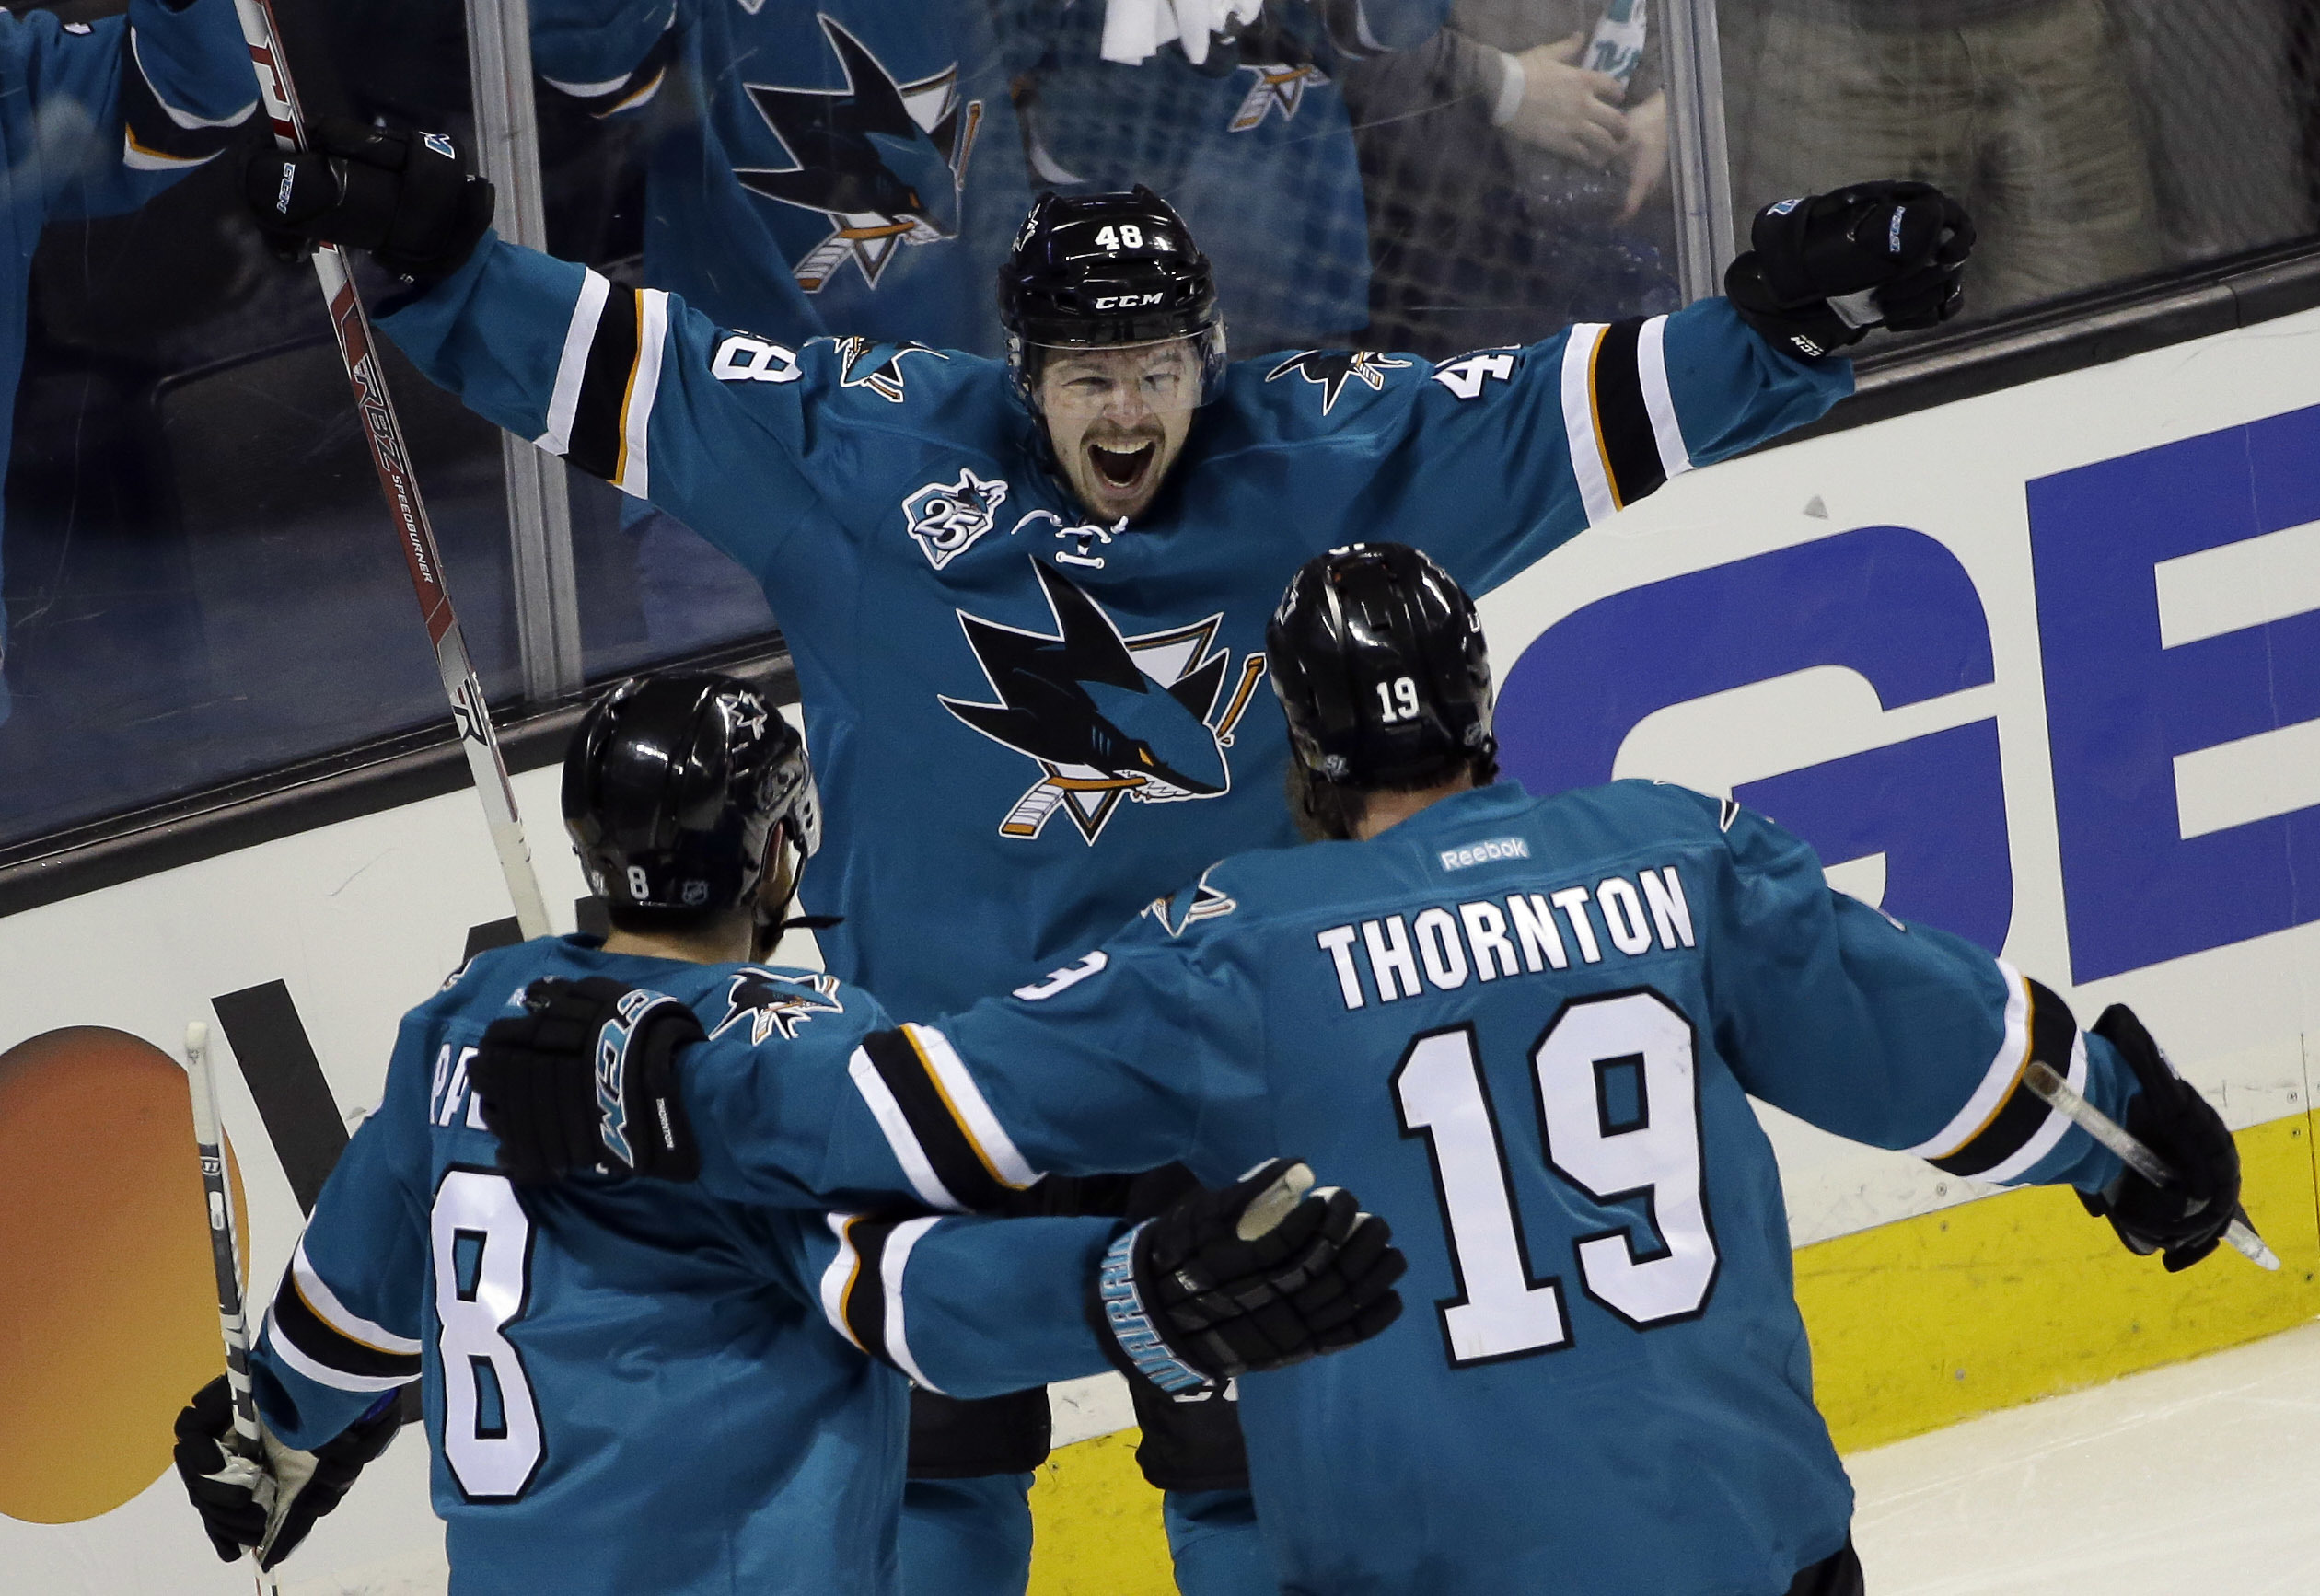 San Jose Sharks' Tomas Hertl (48) celebrates his goal with teammates Joe Thornton (19) and Joe Pavelski (8) during the third period in Game 3 of the NHL hockey Stanley Cup Western Conference finals against the St. Louis Blues on Thursday, May 19, 2016, in